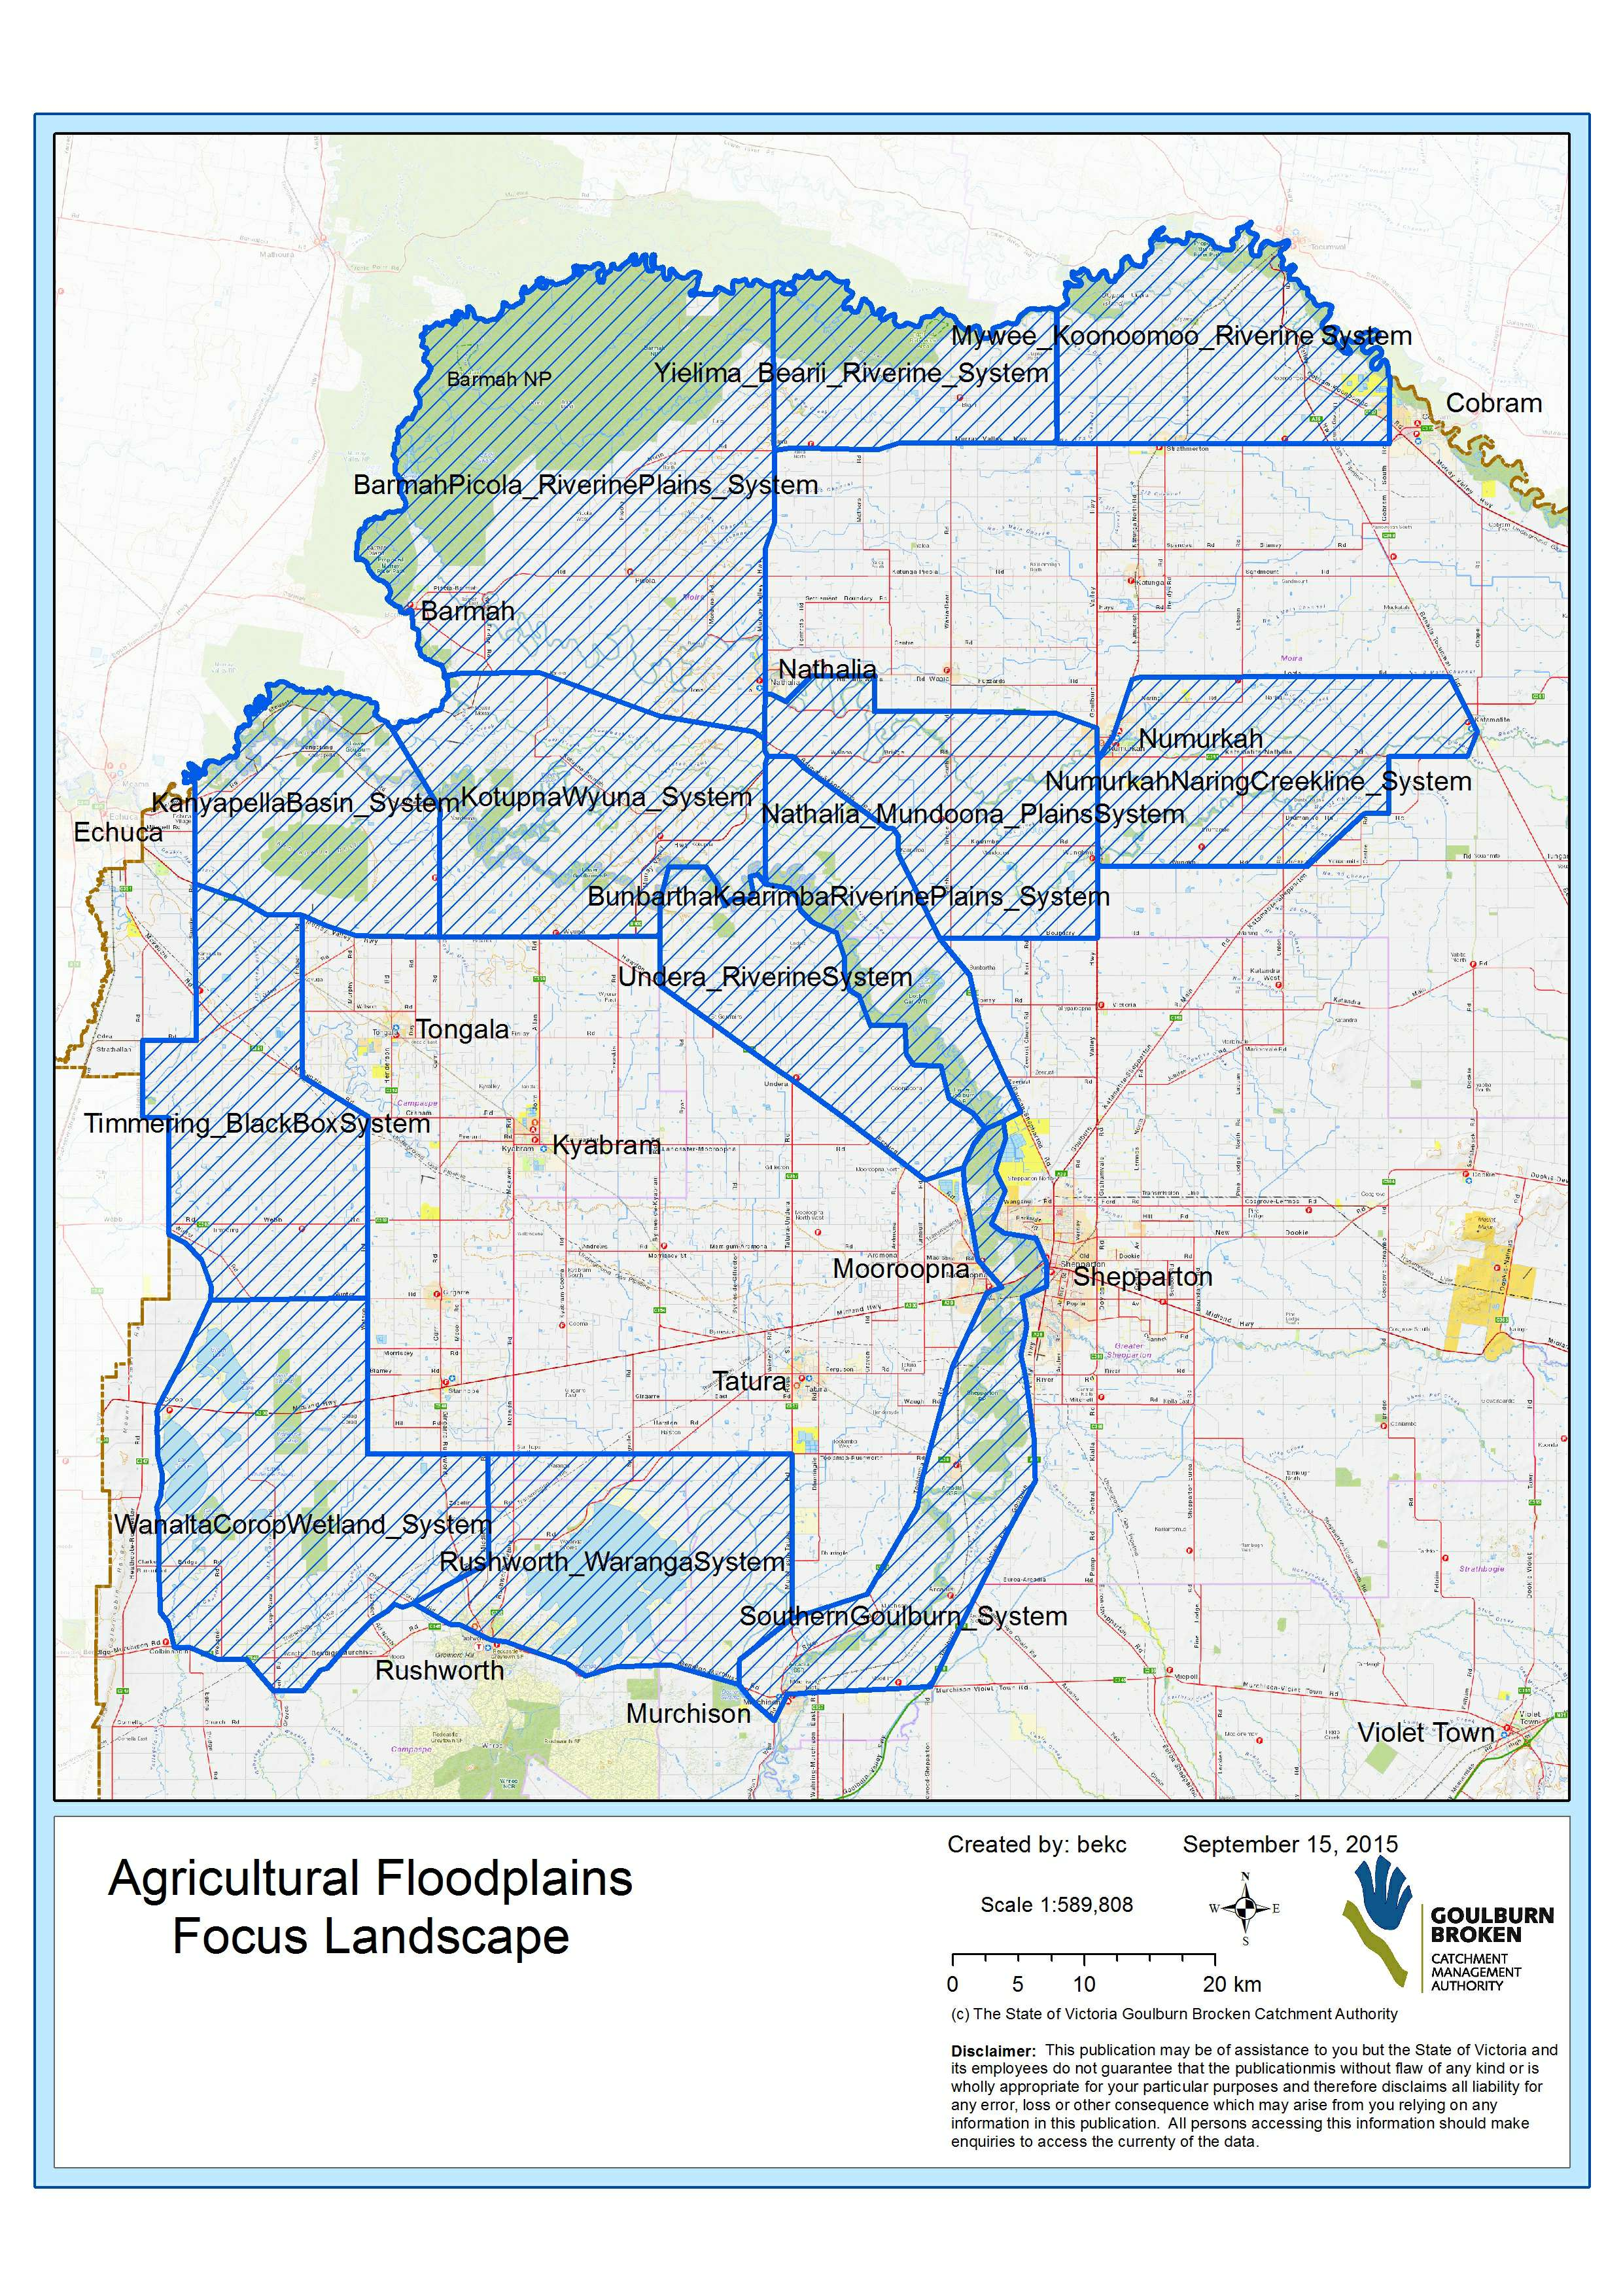 Focal landscapes map for the Agricultural Floodplains